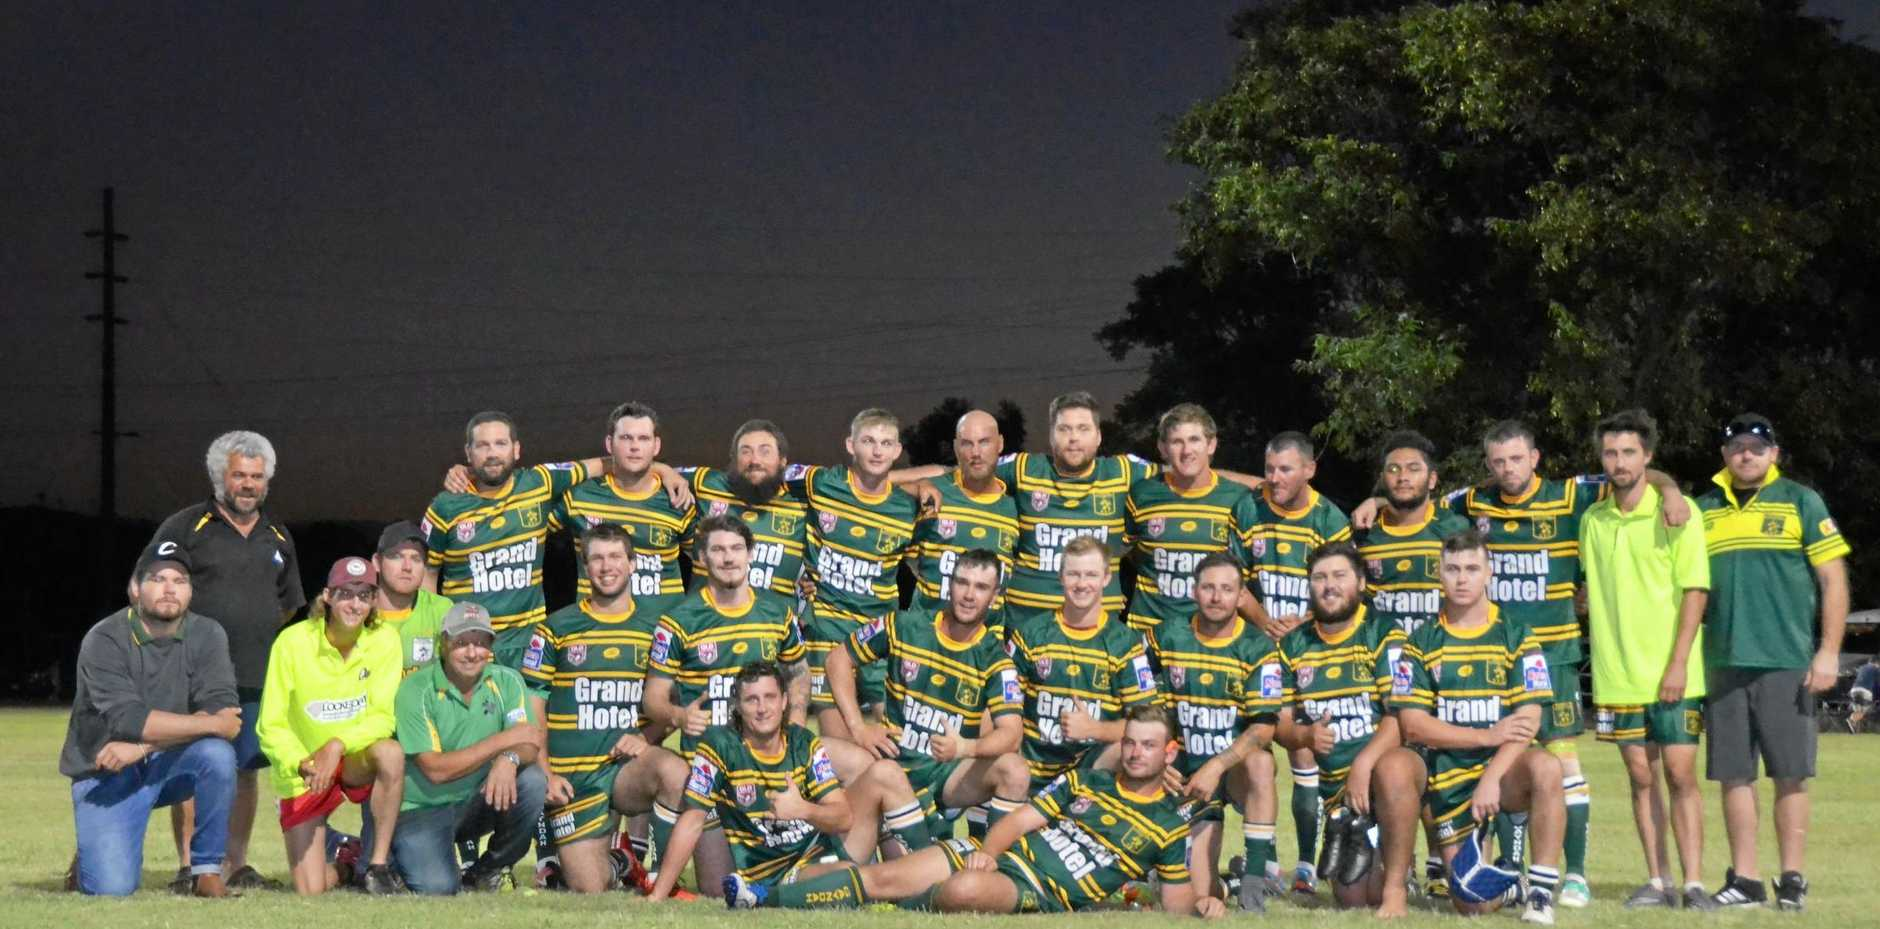 WINNERS: Gayndah Gladiators had a massive win over Biggenden Warriors with a score of 54 to 14.